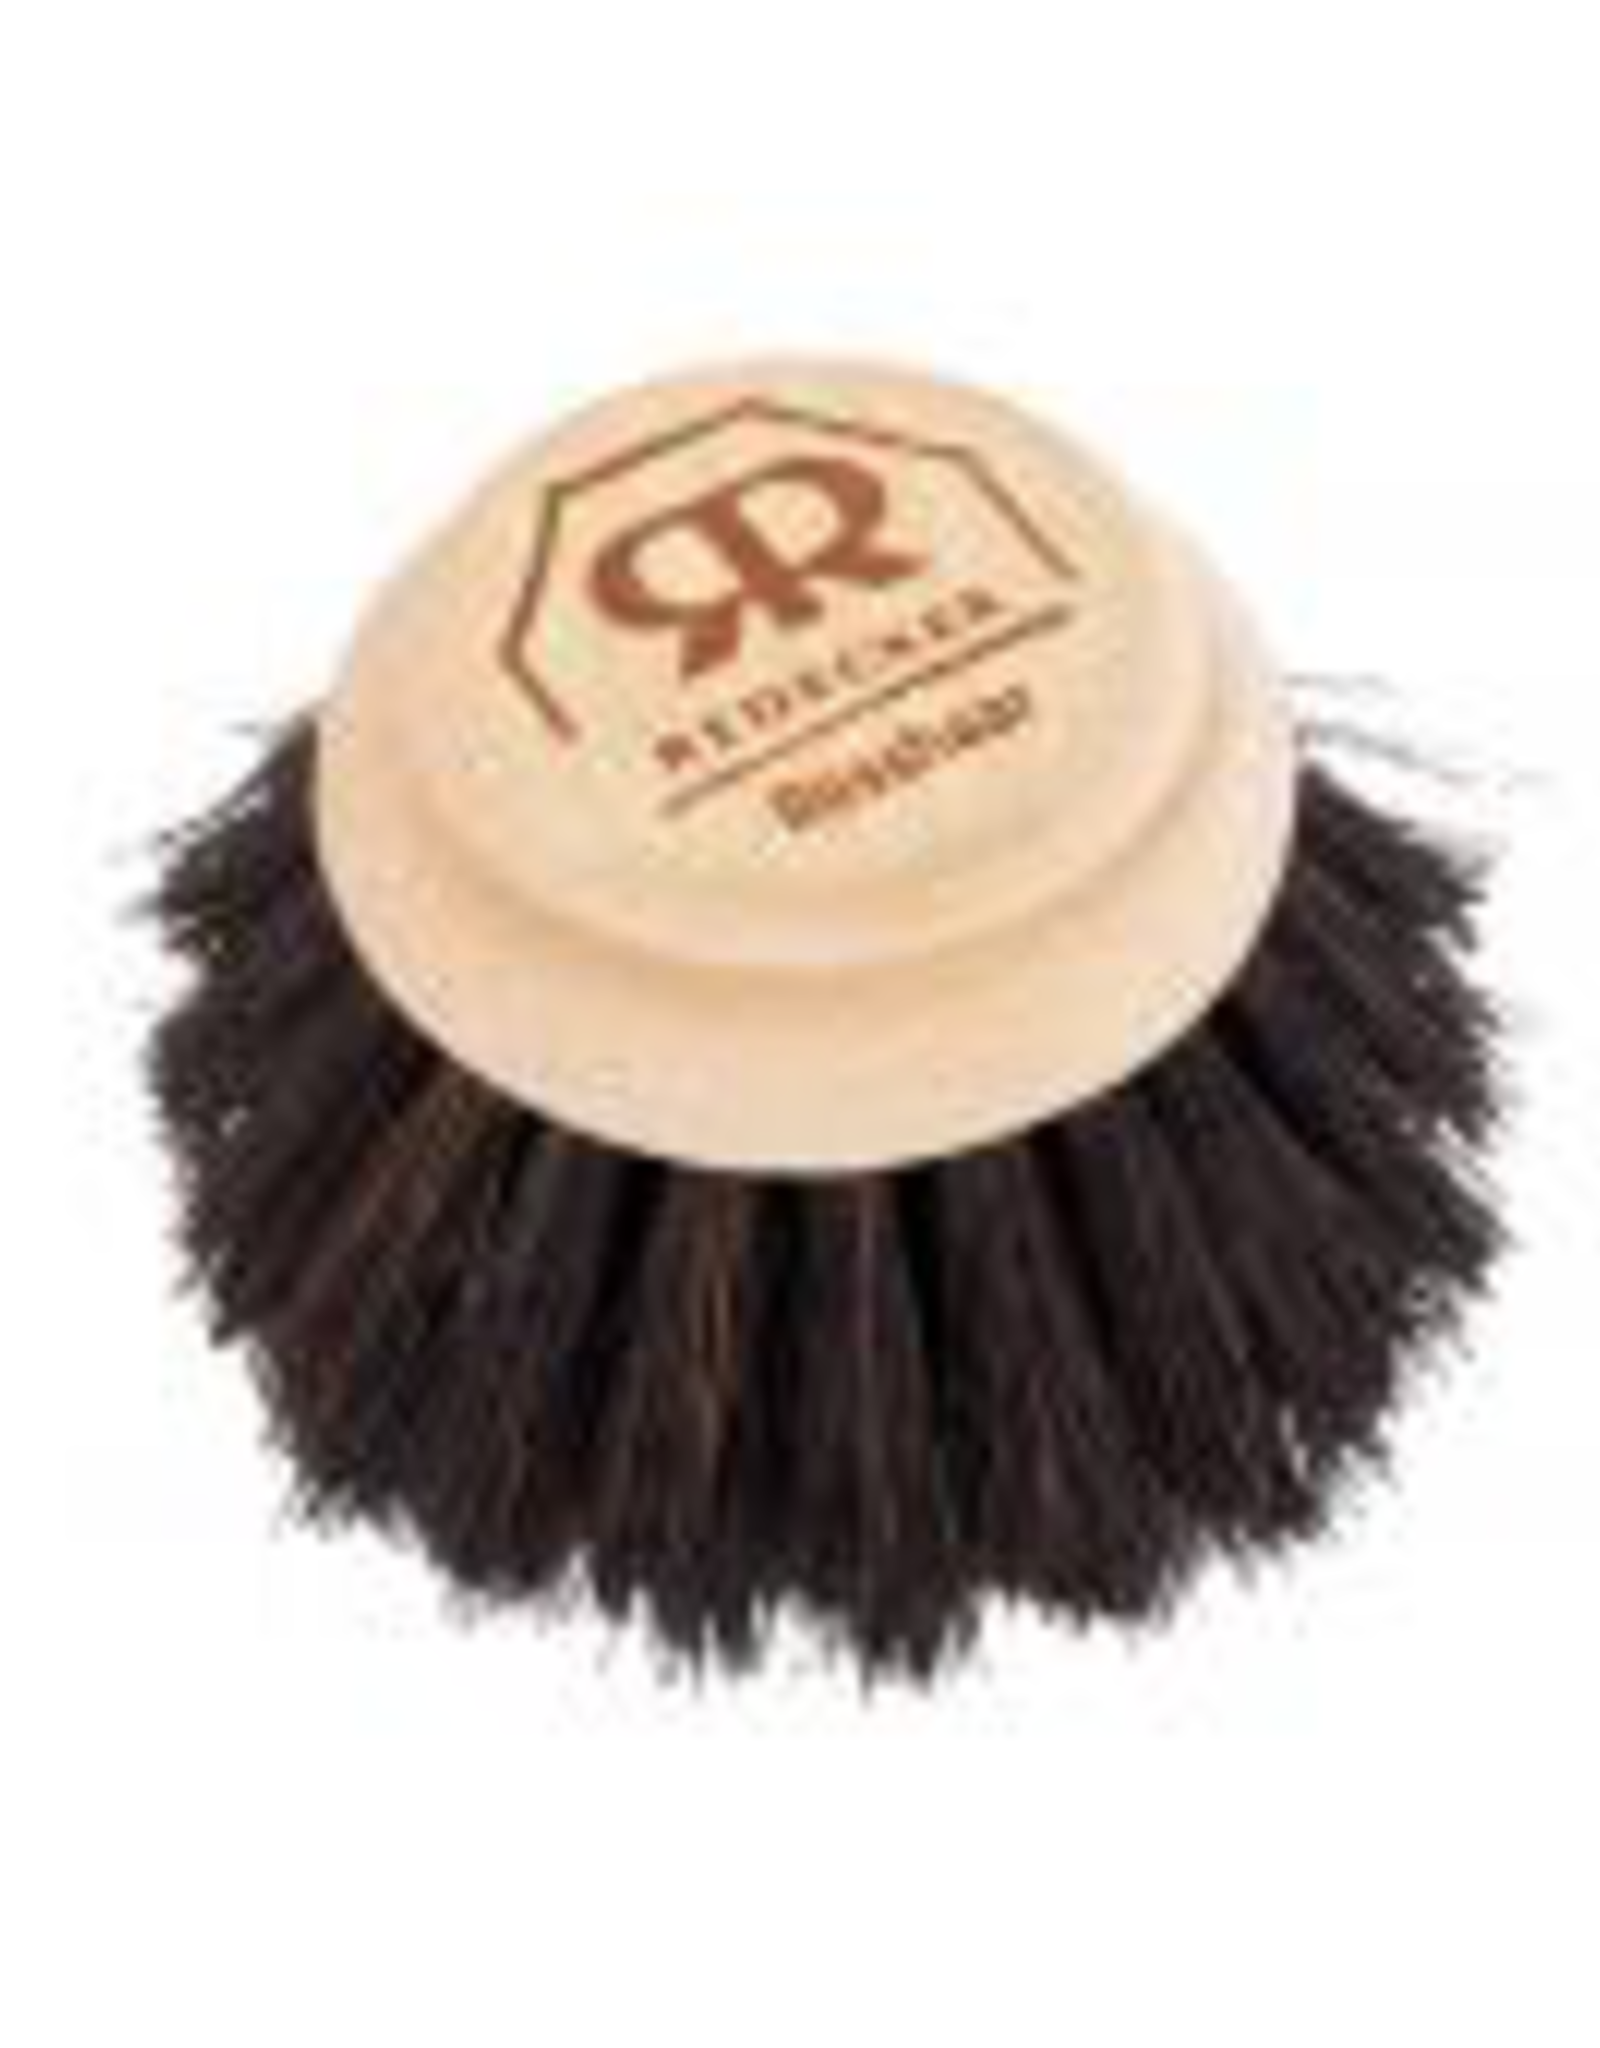 Redecker Redecker Dish Brush-Replacement Head-Black